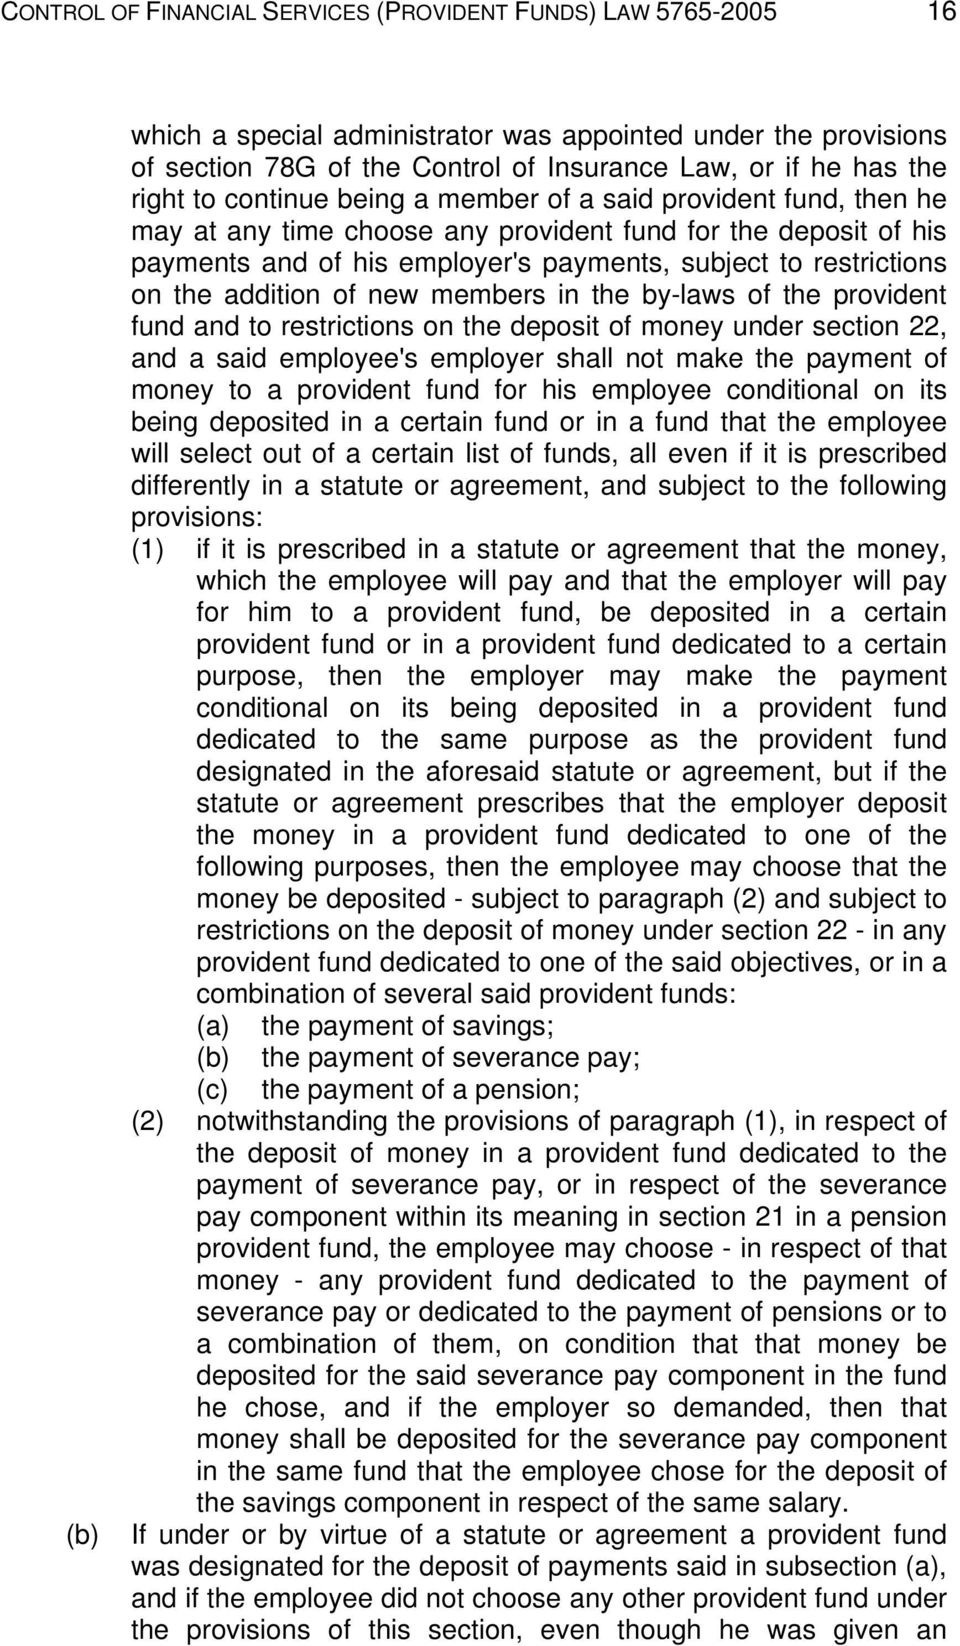 the addition of new members in the by-laws of the provident fund and to restrictions on the deposit of money under section 22, and a said employee's employer shall not make the payment of money to a